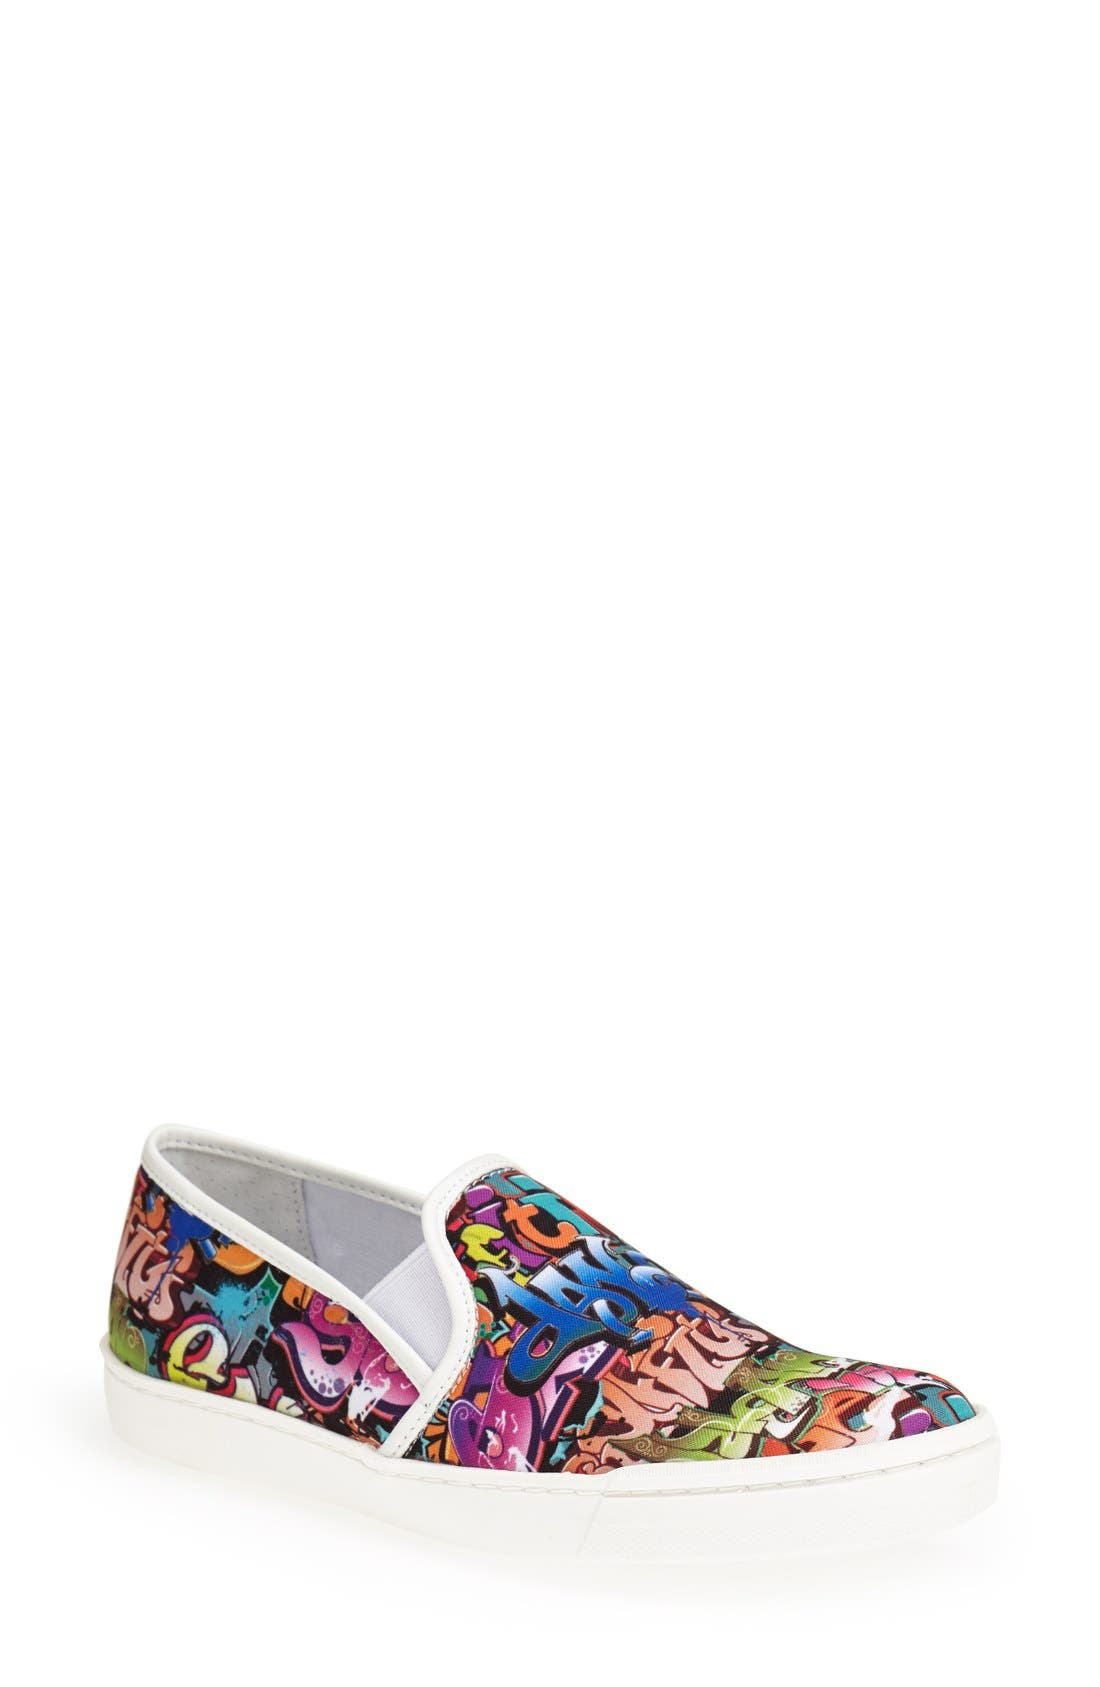 Alternate Image 1 Selected - Steve Madden 'Ecentrcm' Graffiti Print Slip-On Sneaker (Women)